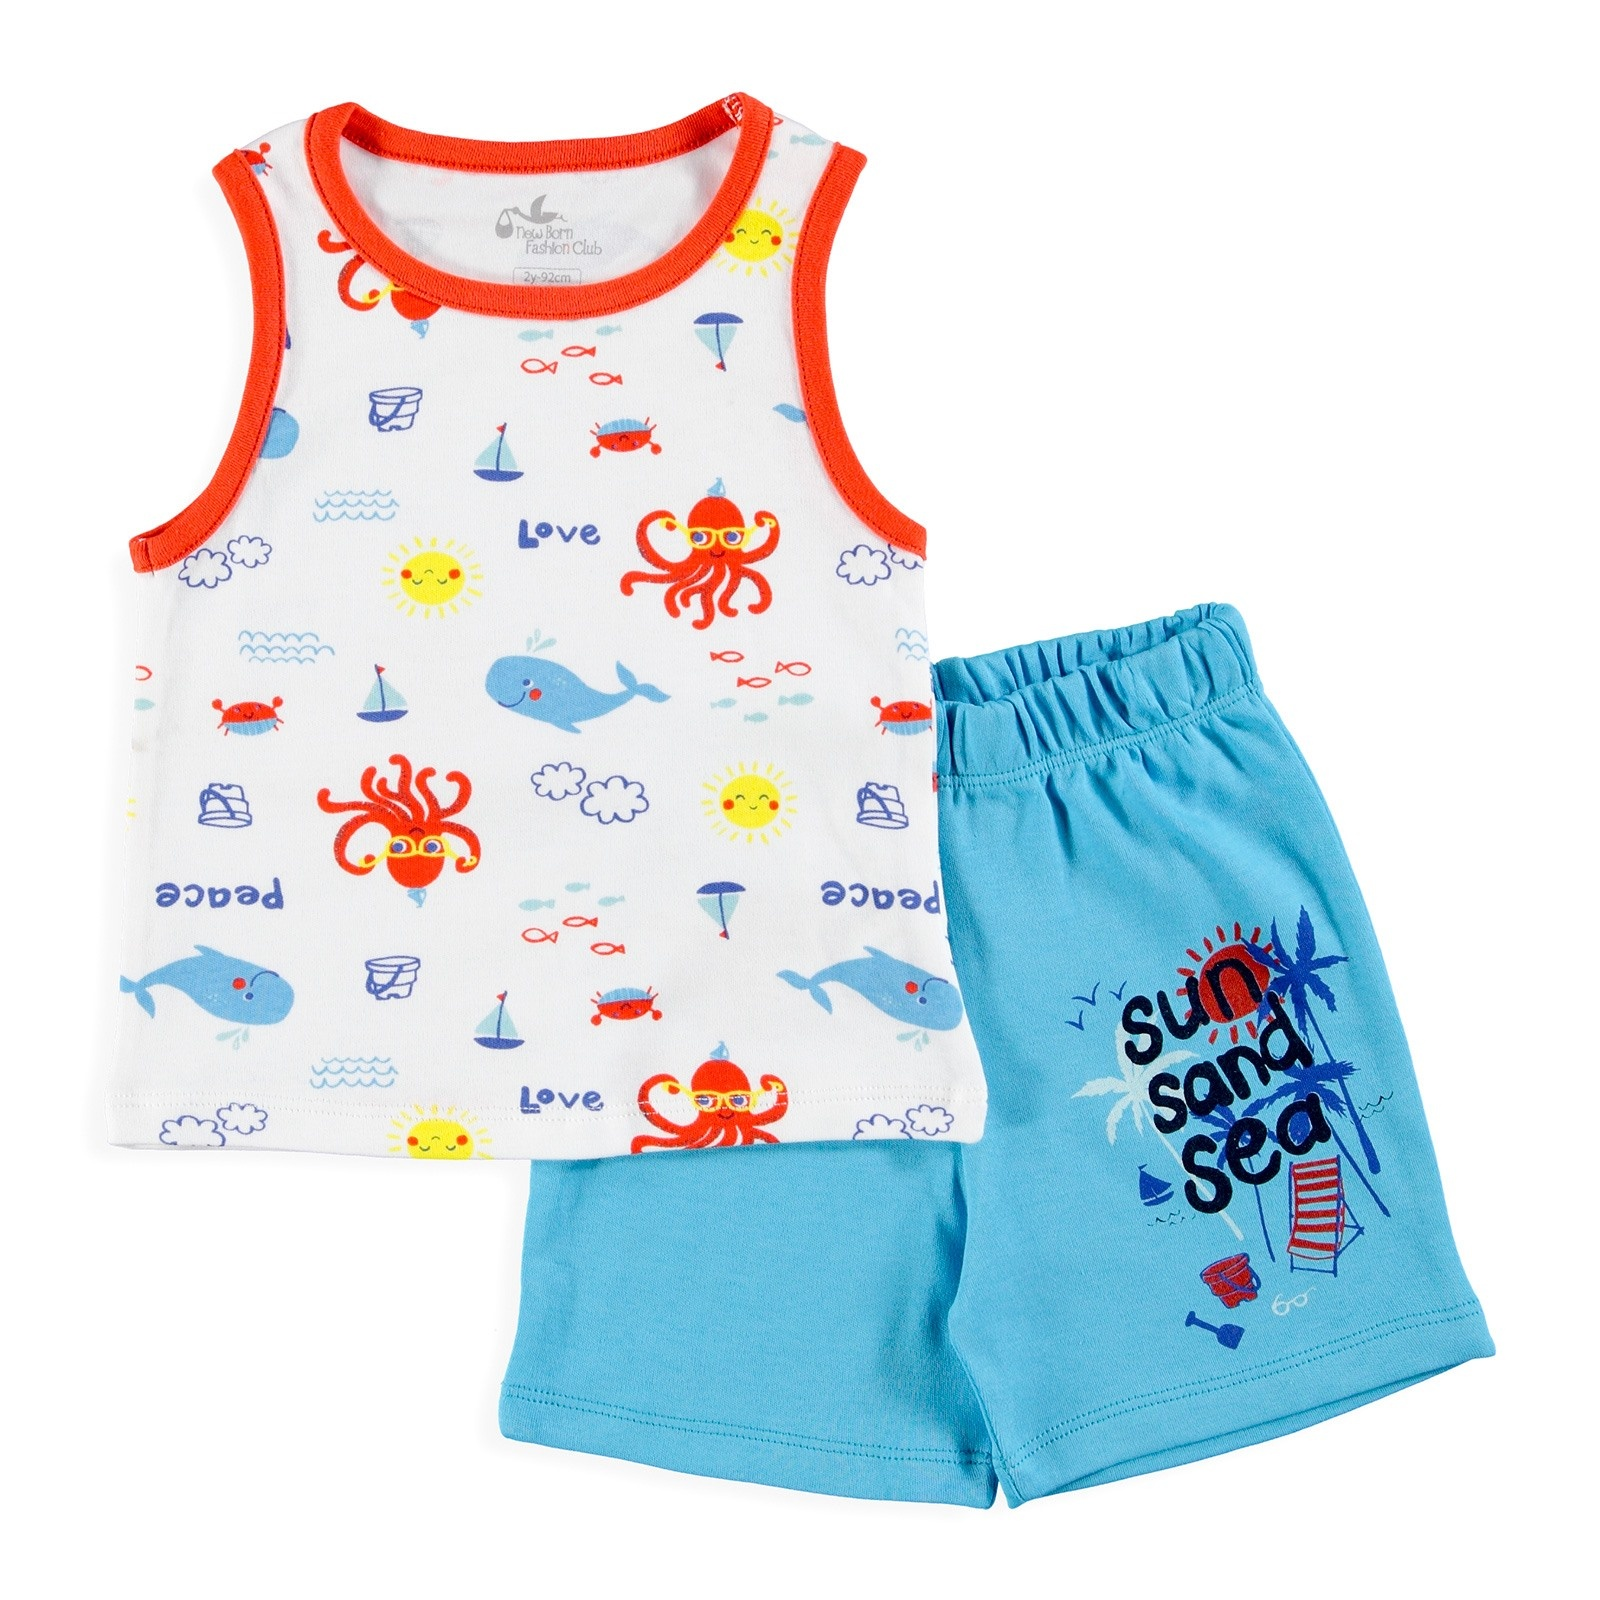 Ebebek Newborn Fashion Club Baby Boy Fun Summer Athlete Short